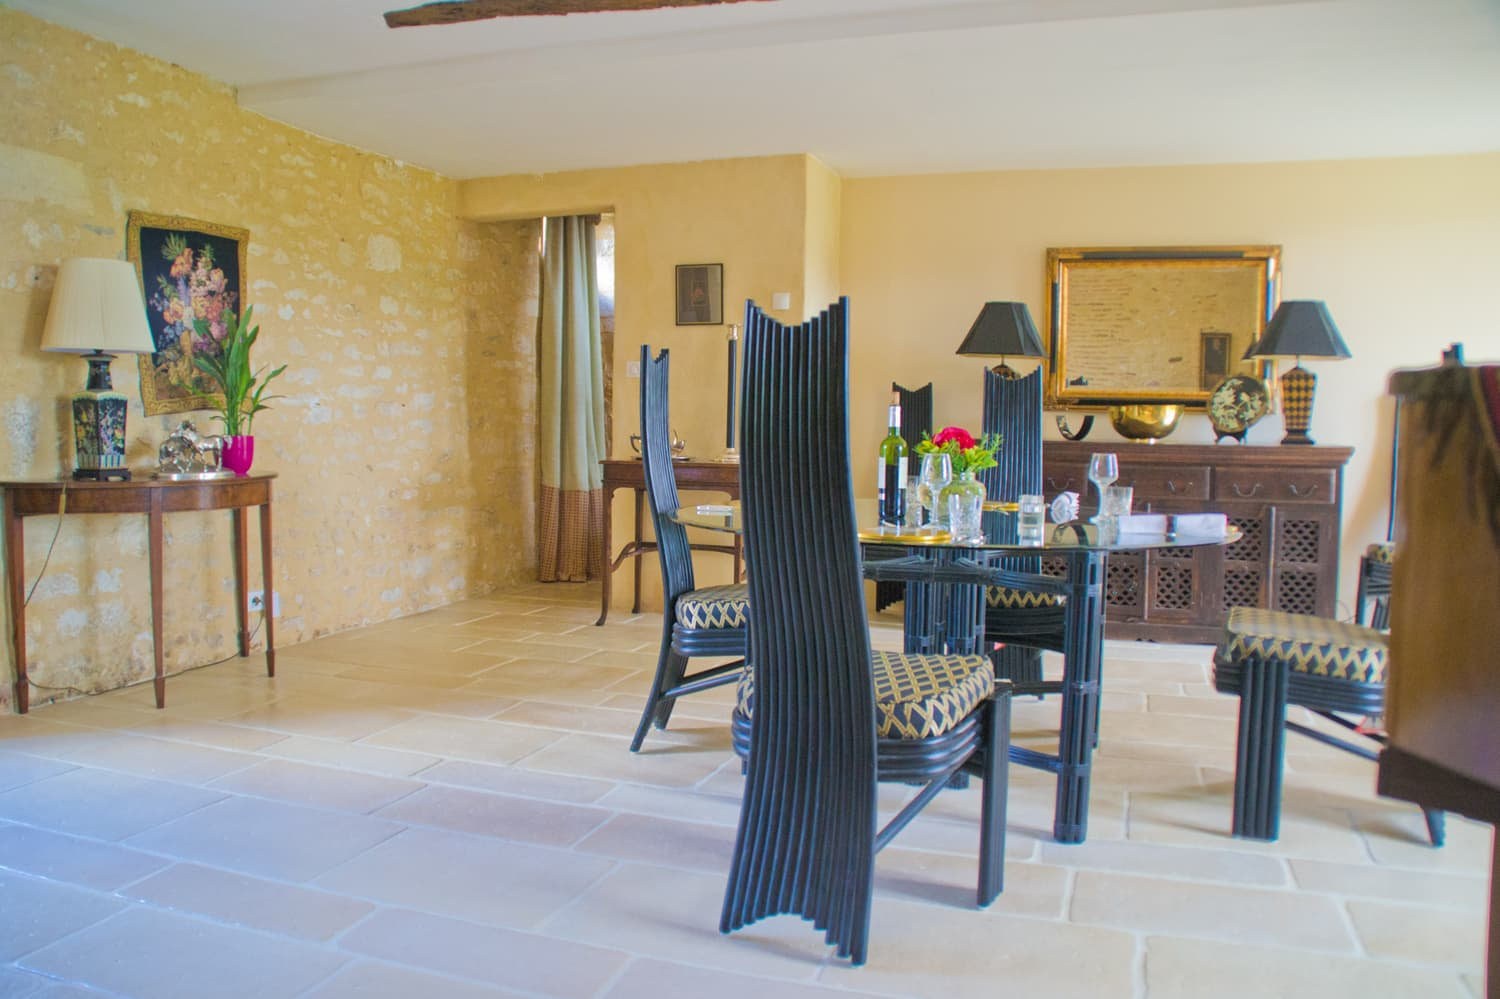 Dining room in Dordogne holiday rental home